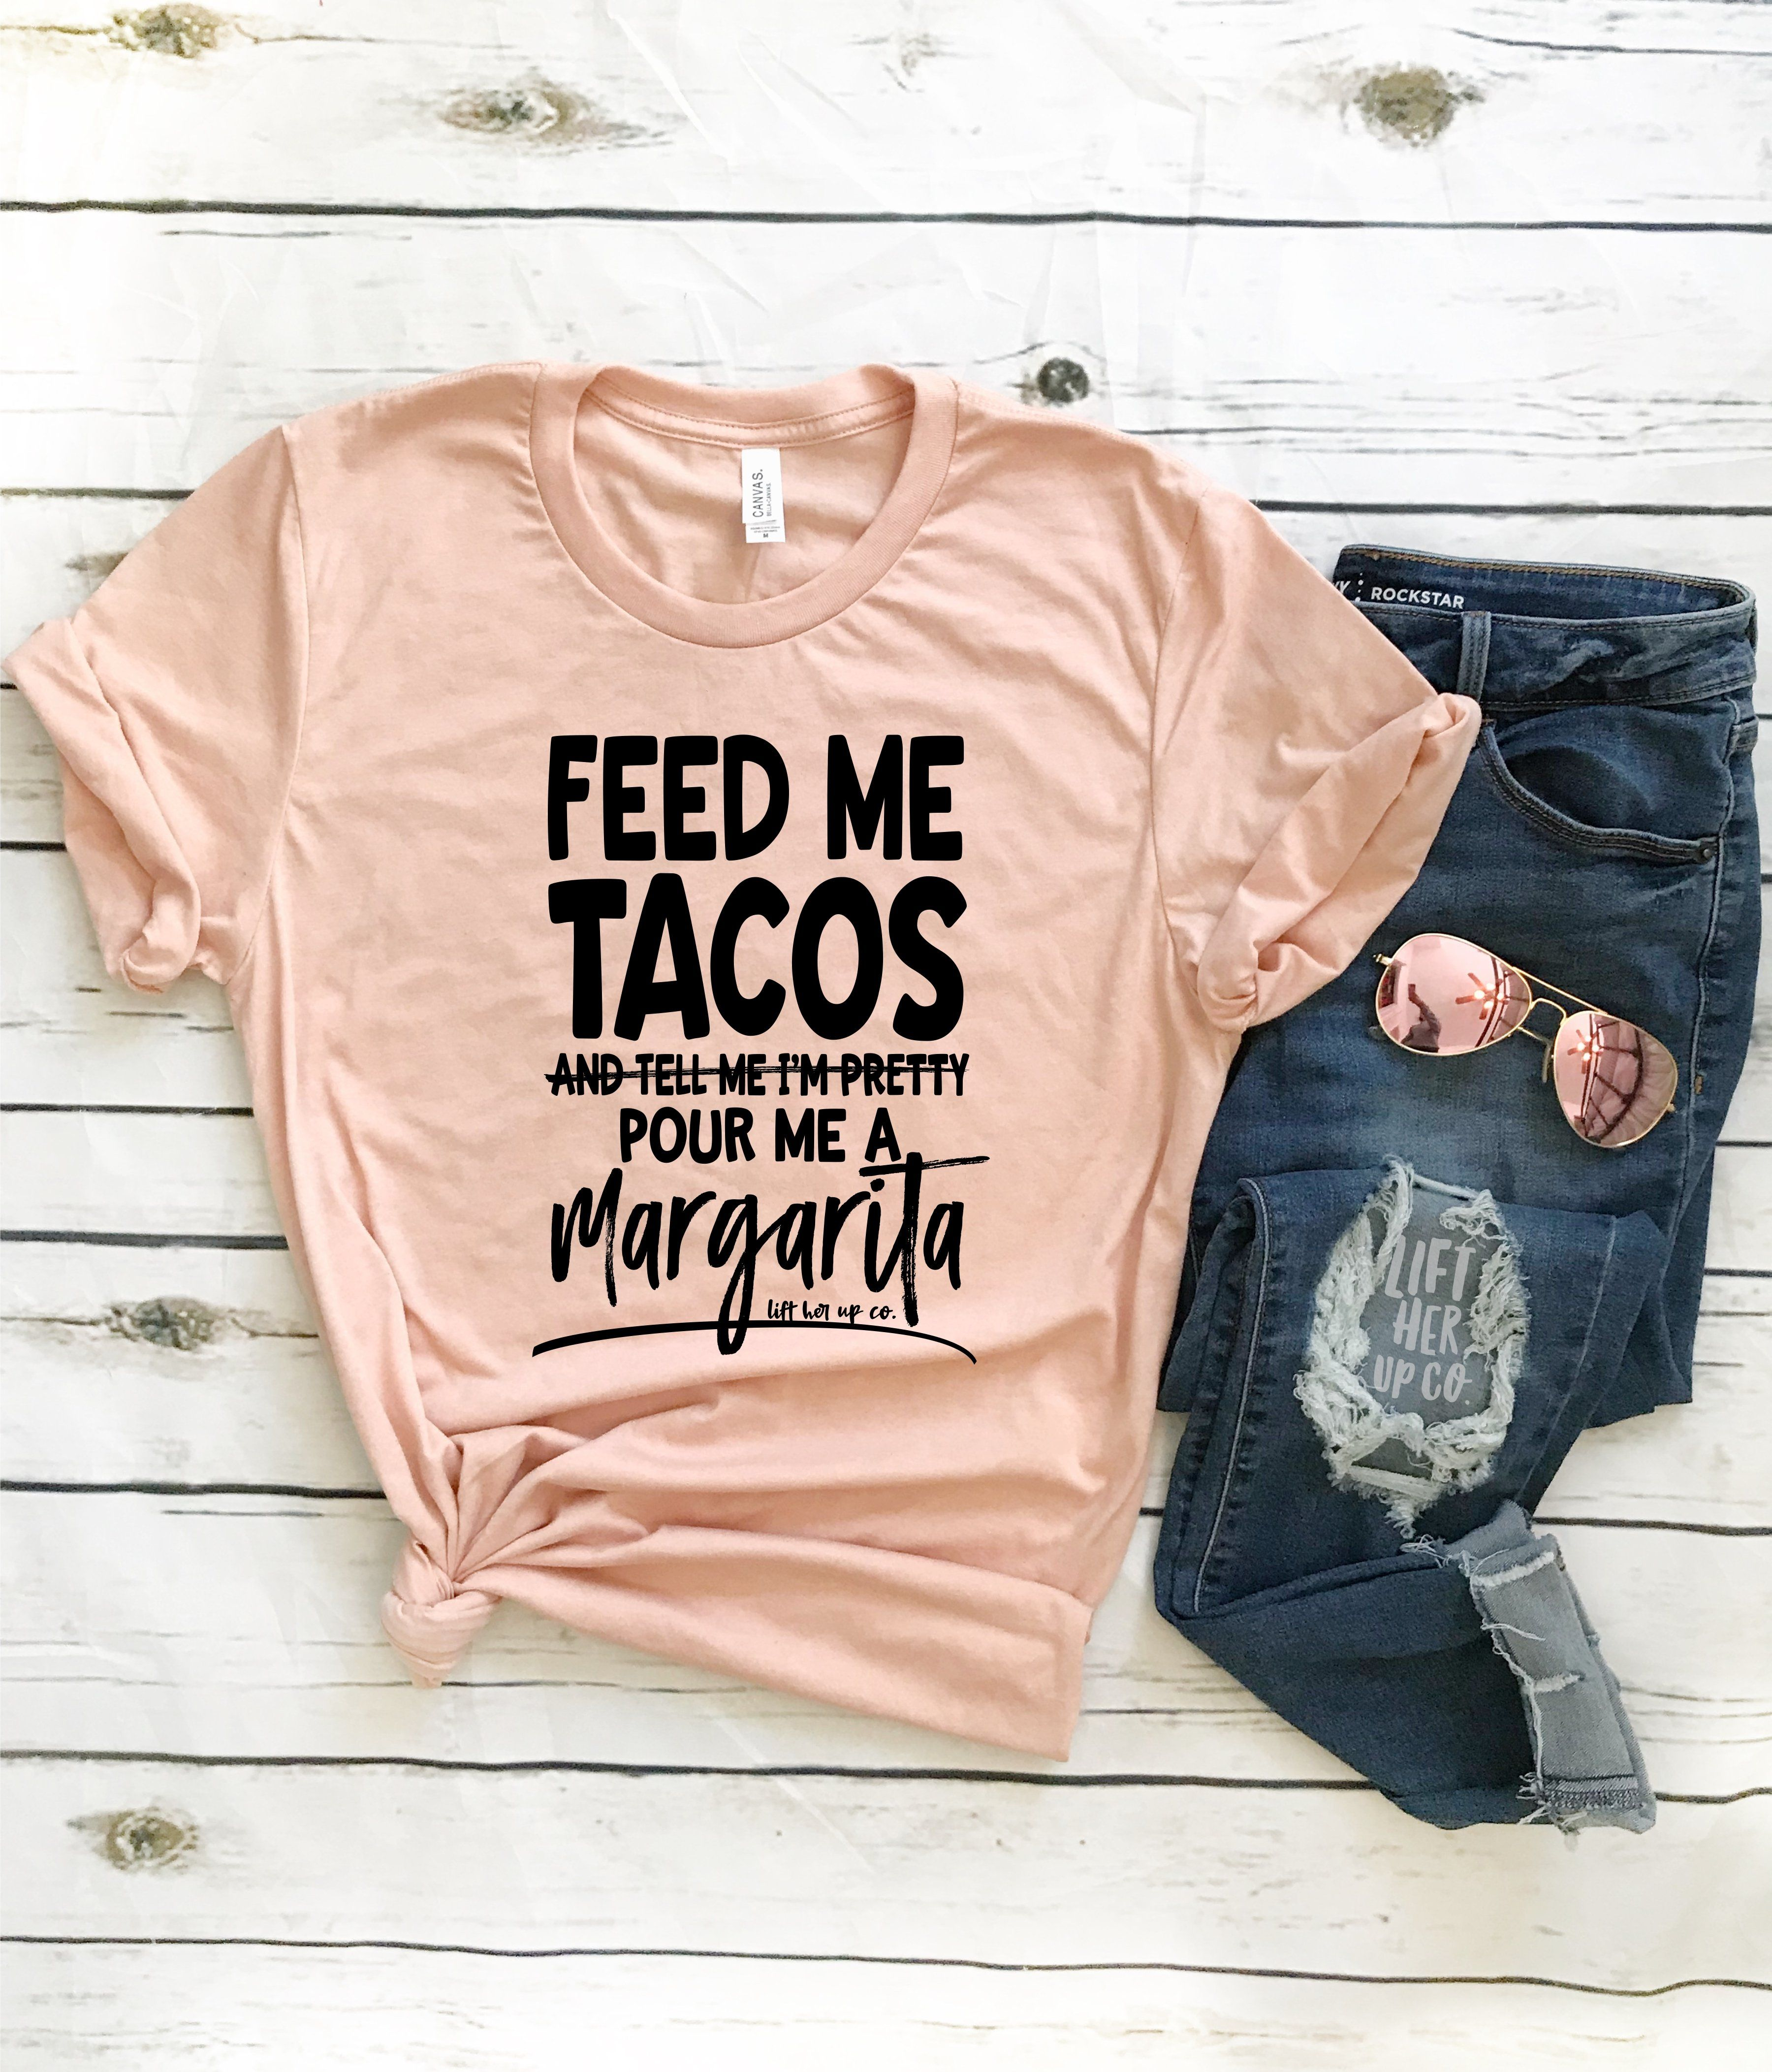 f459144d55b7e Feed Me Tacos and Pour Me a Margarita Unisex Tee Shirt